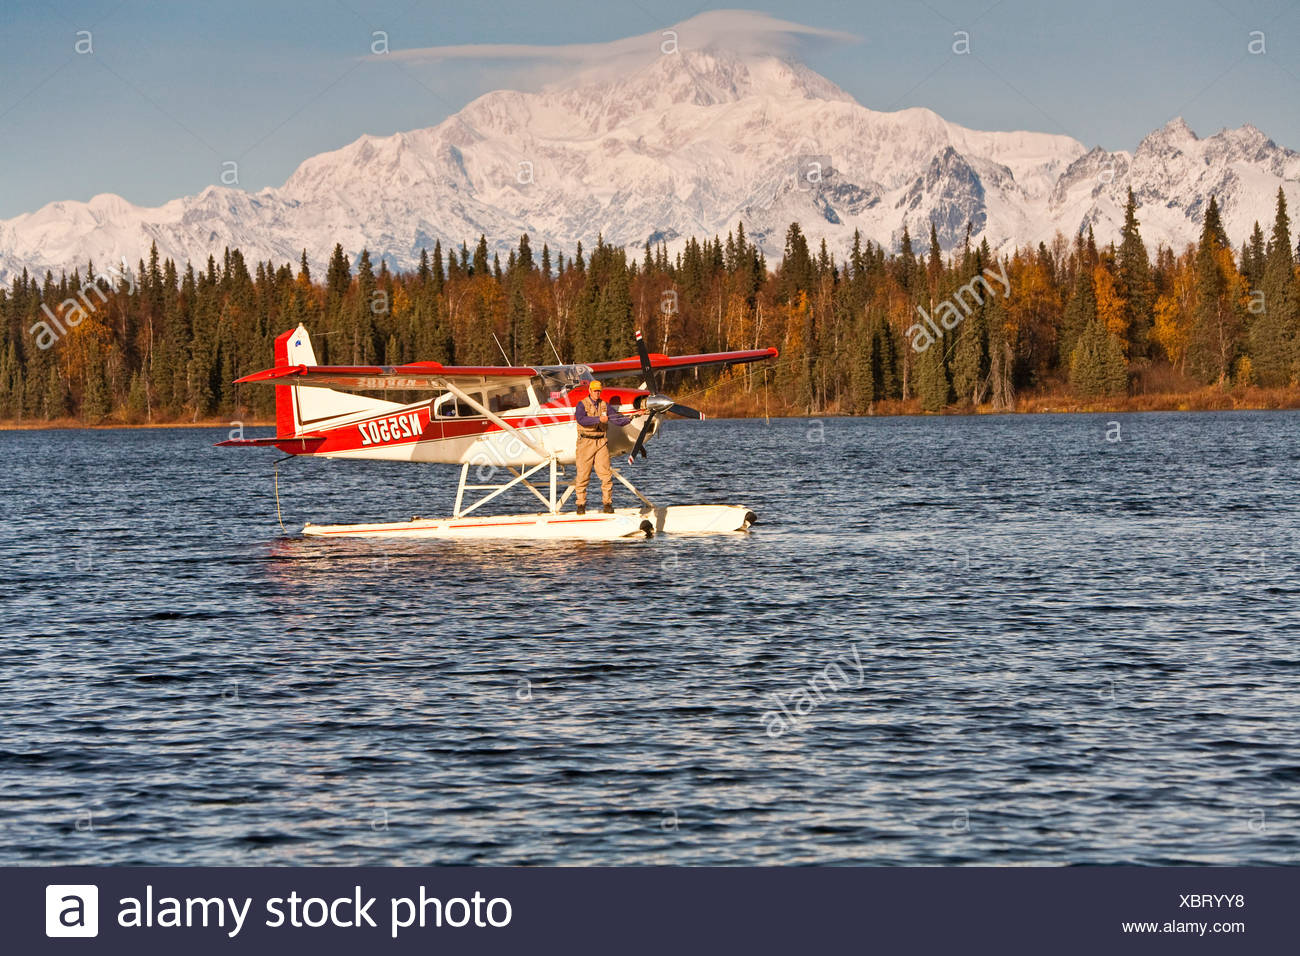 Flyfisherman fishing off of the float of a Cessna 185 floatplane on